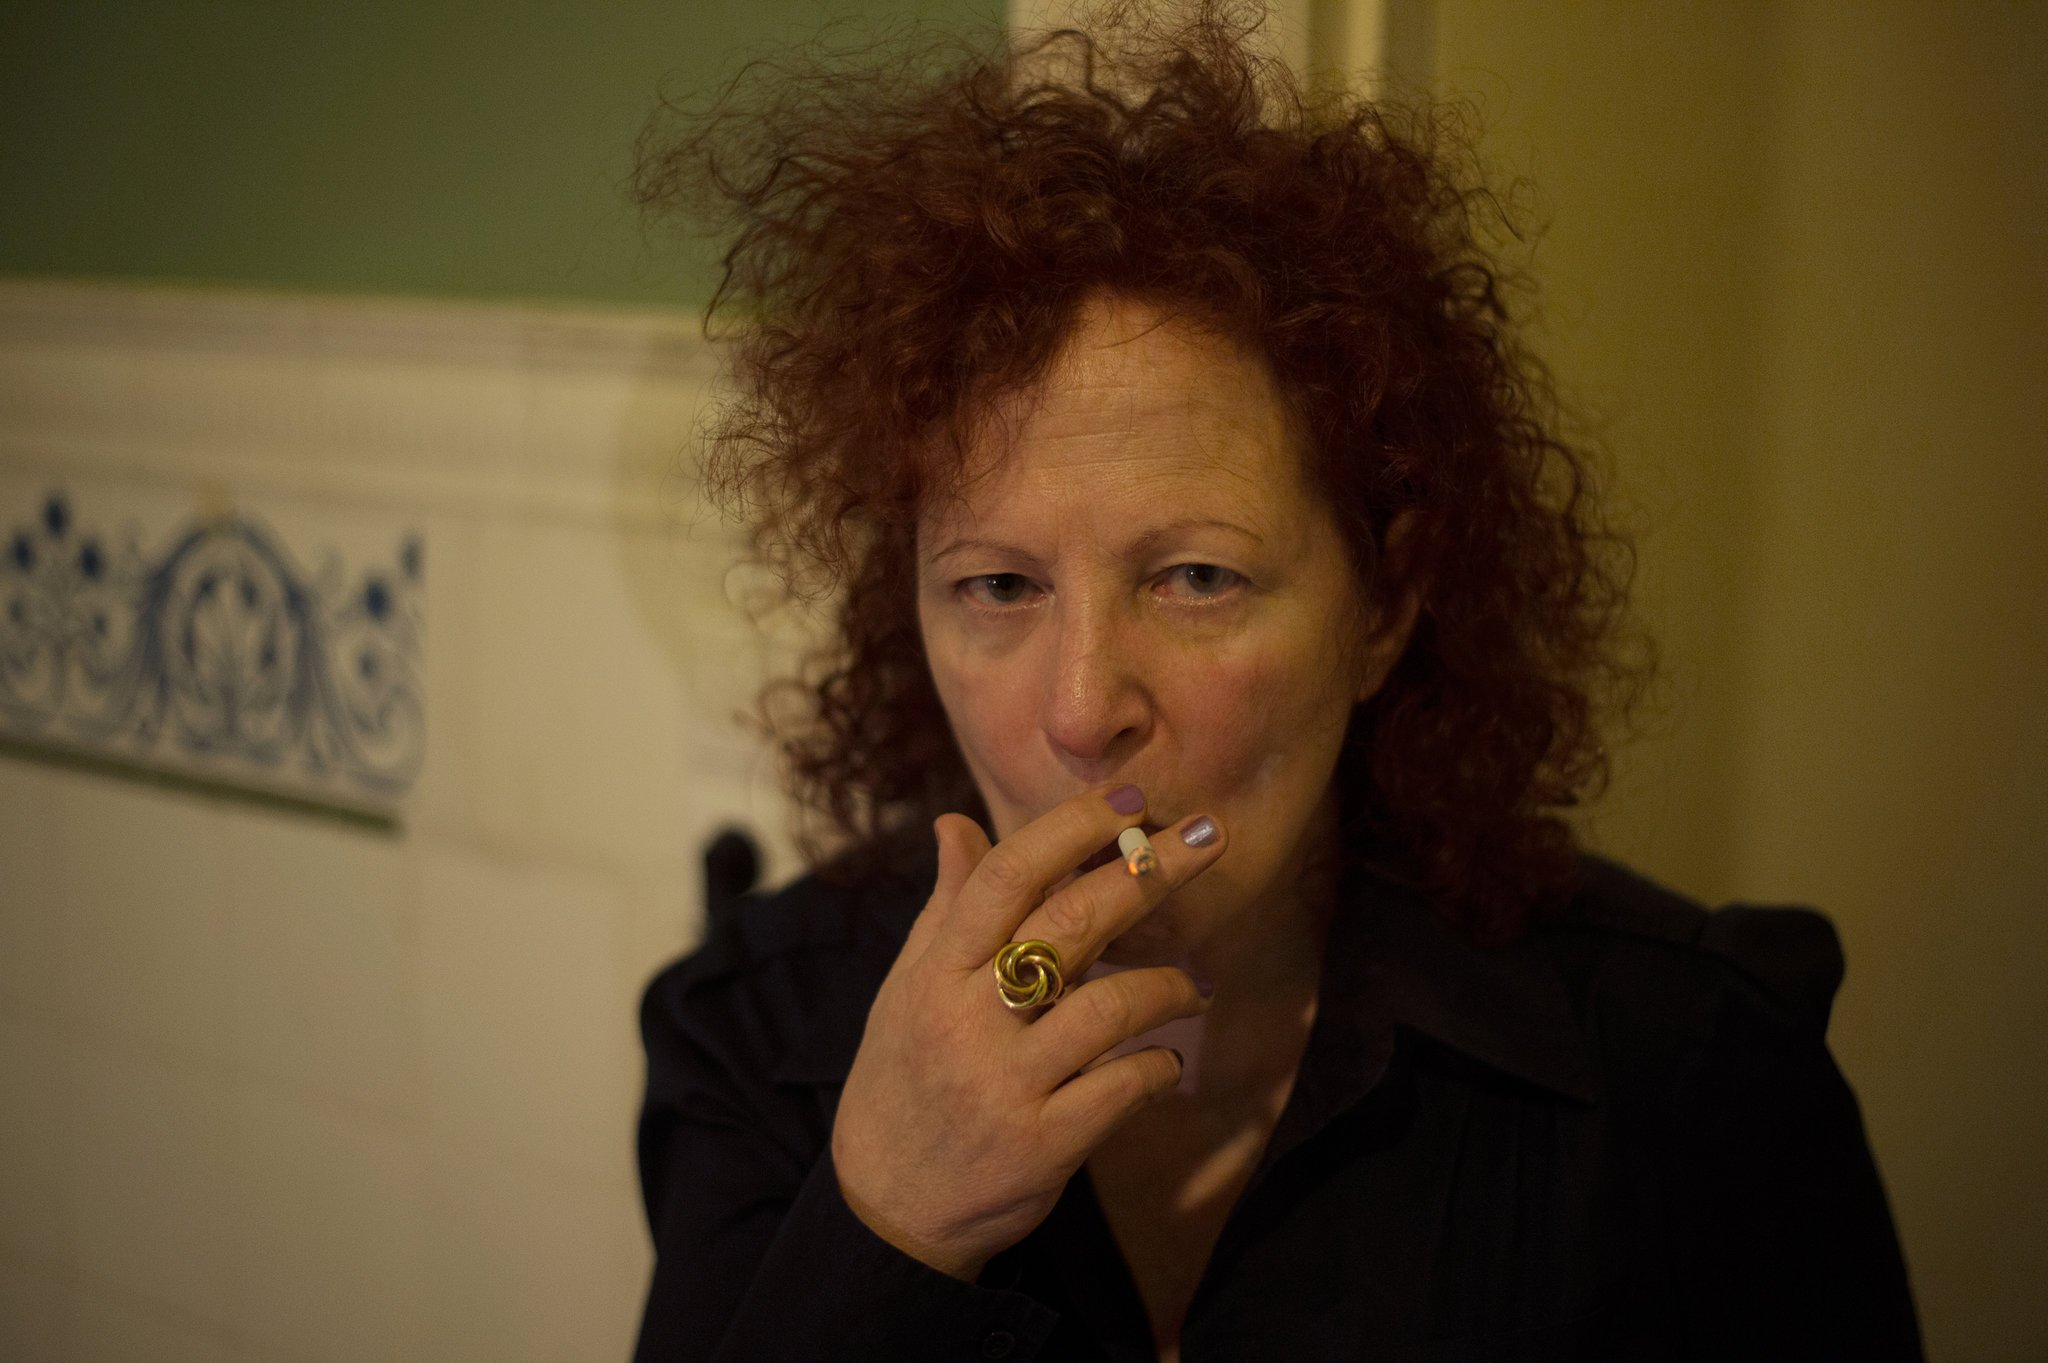 Self-Portrait 1st Time on Oxy, Berlin, 2014. © Nan Goldin, via Artforum